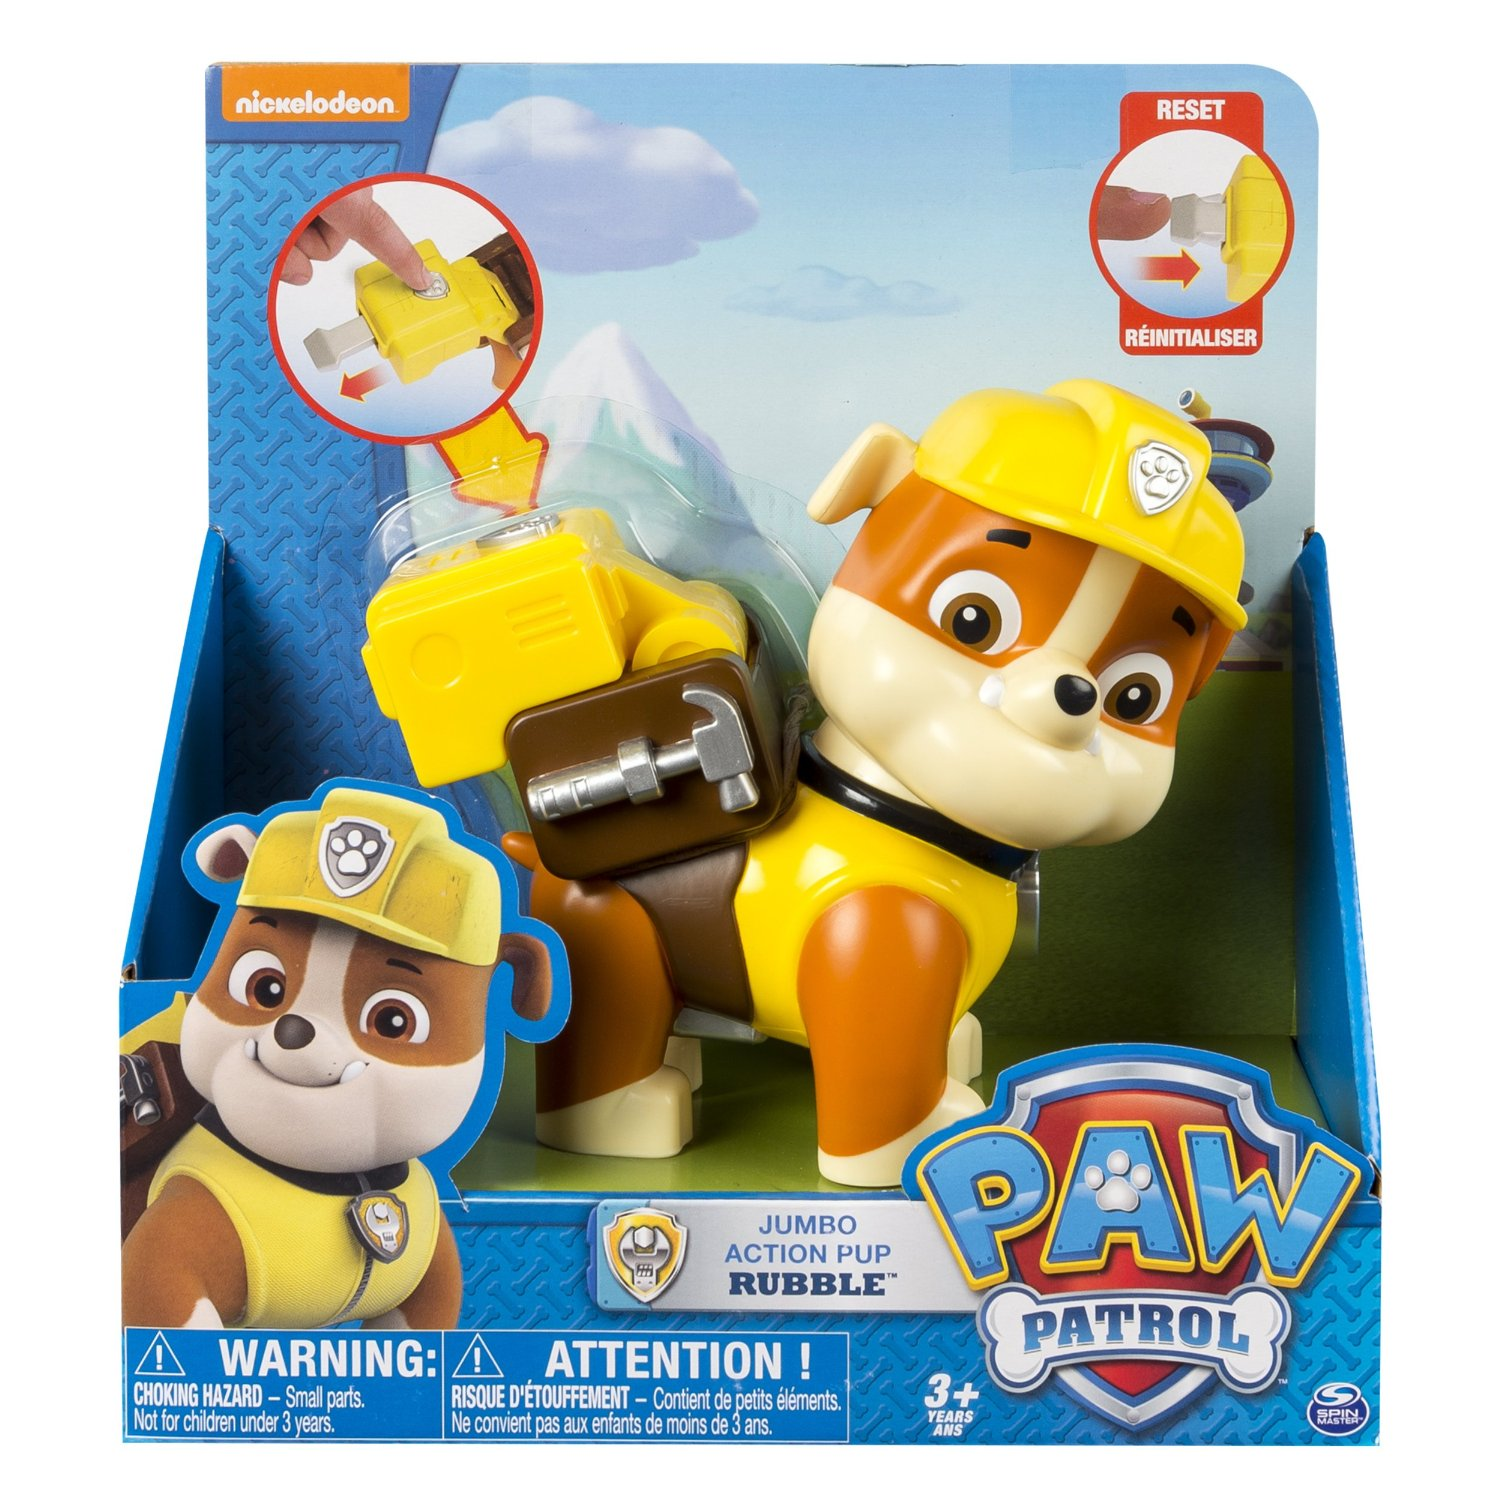 Paw patrol Jumbo action rubble - paw patrol, 10 stk. på lager fra pixizoo